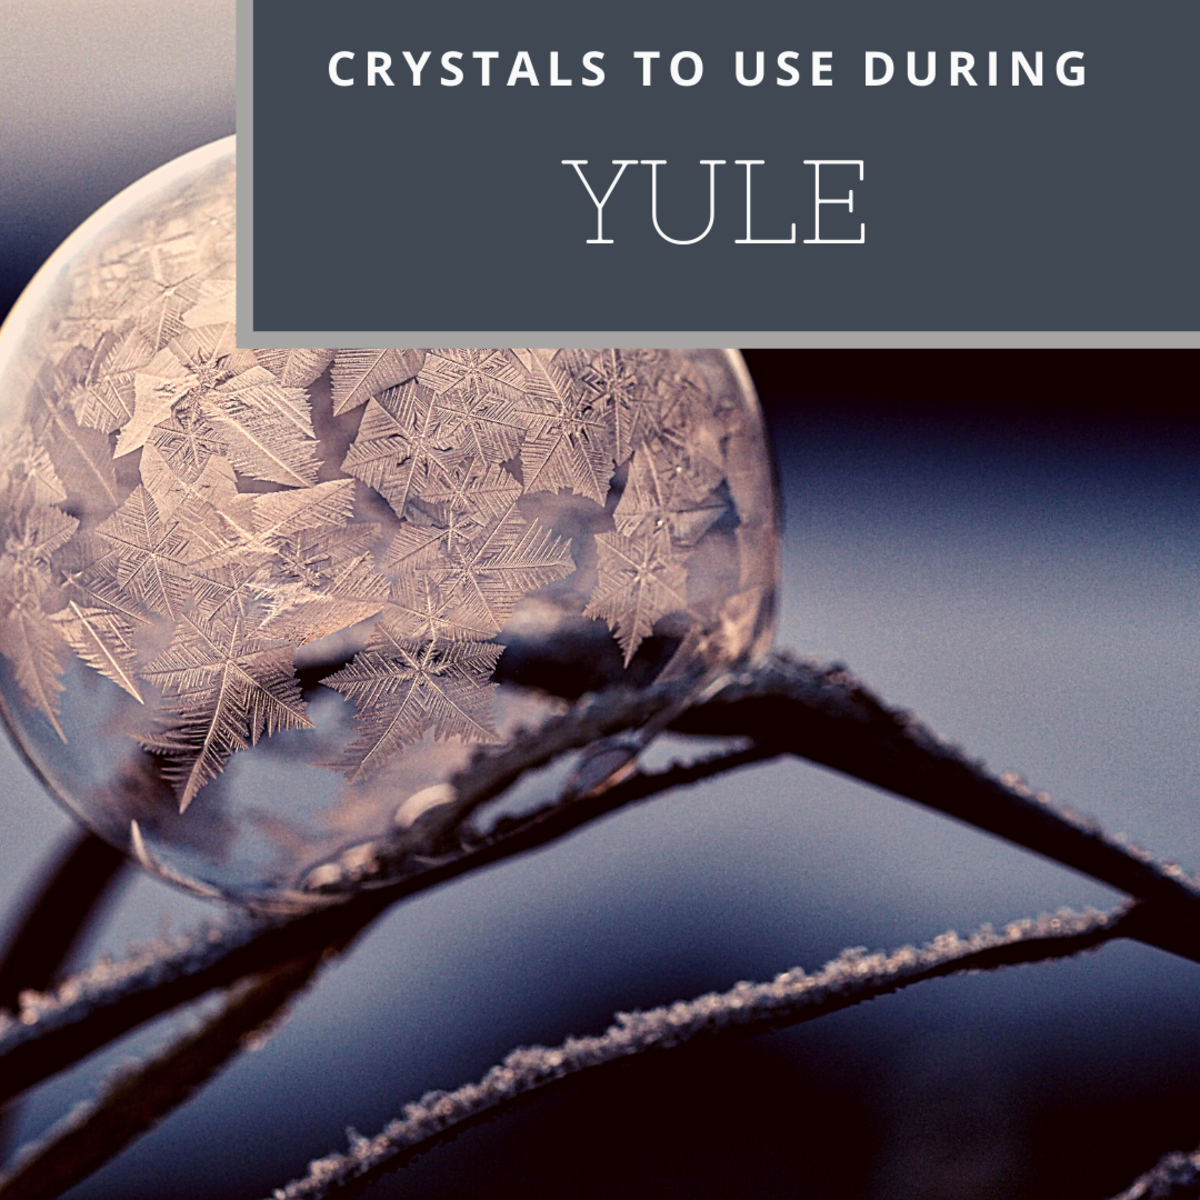 Crystals can help you make the most of this special time of year.